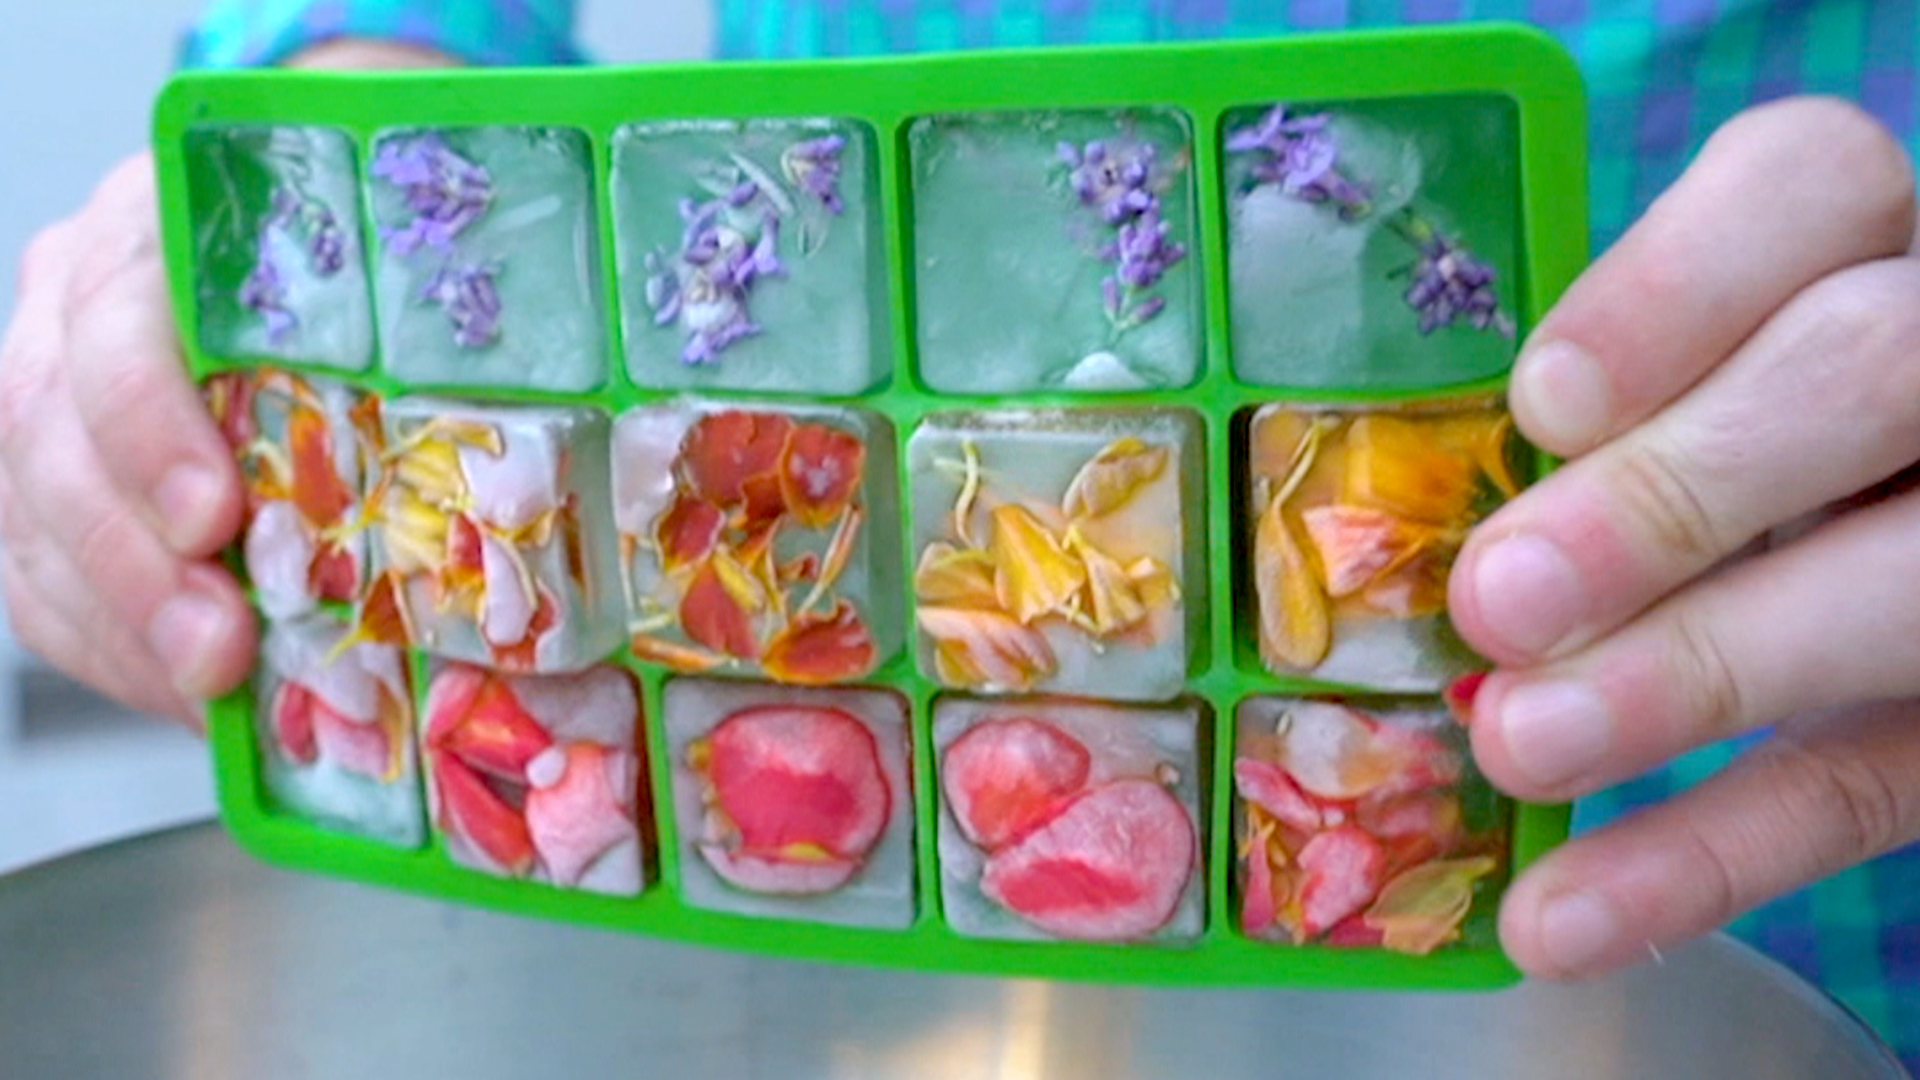 Easy Tips To Make Your Own Floral Ice Cubes